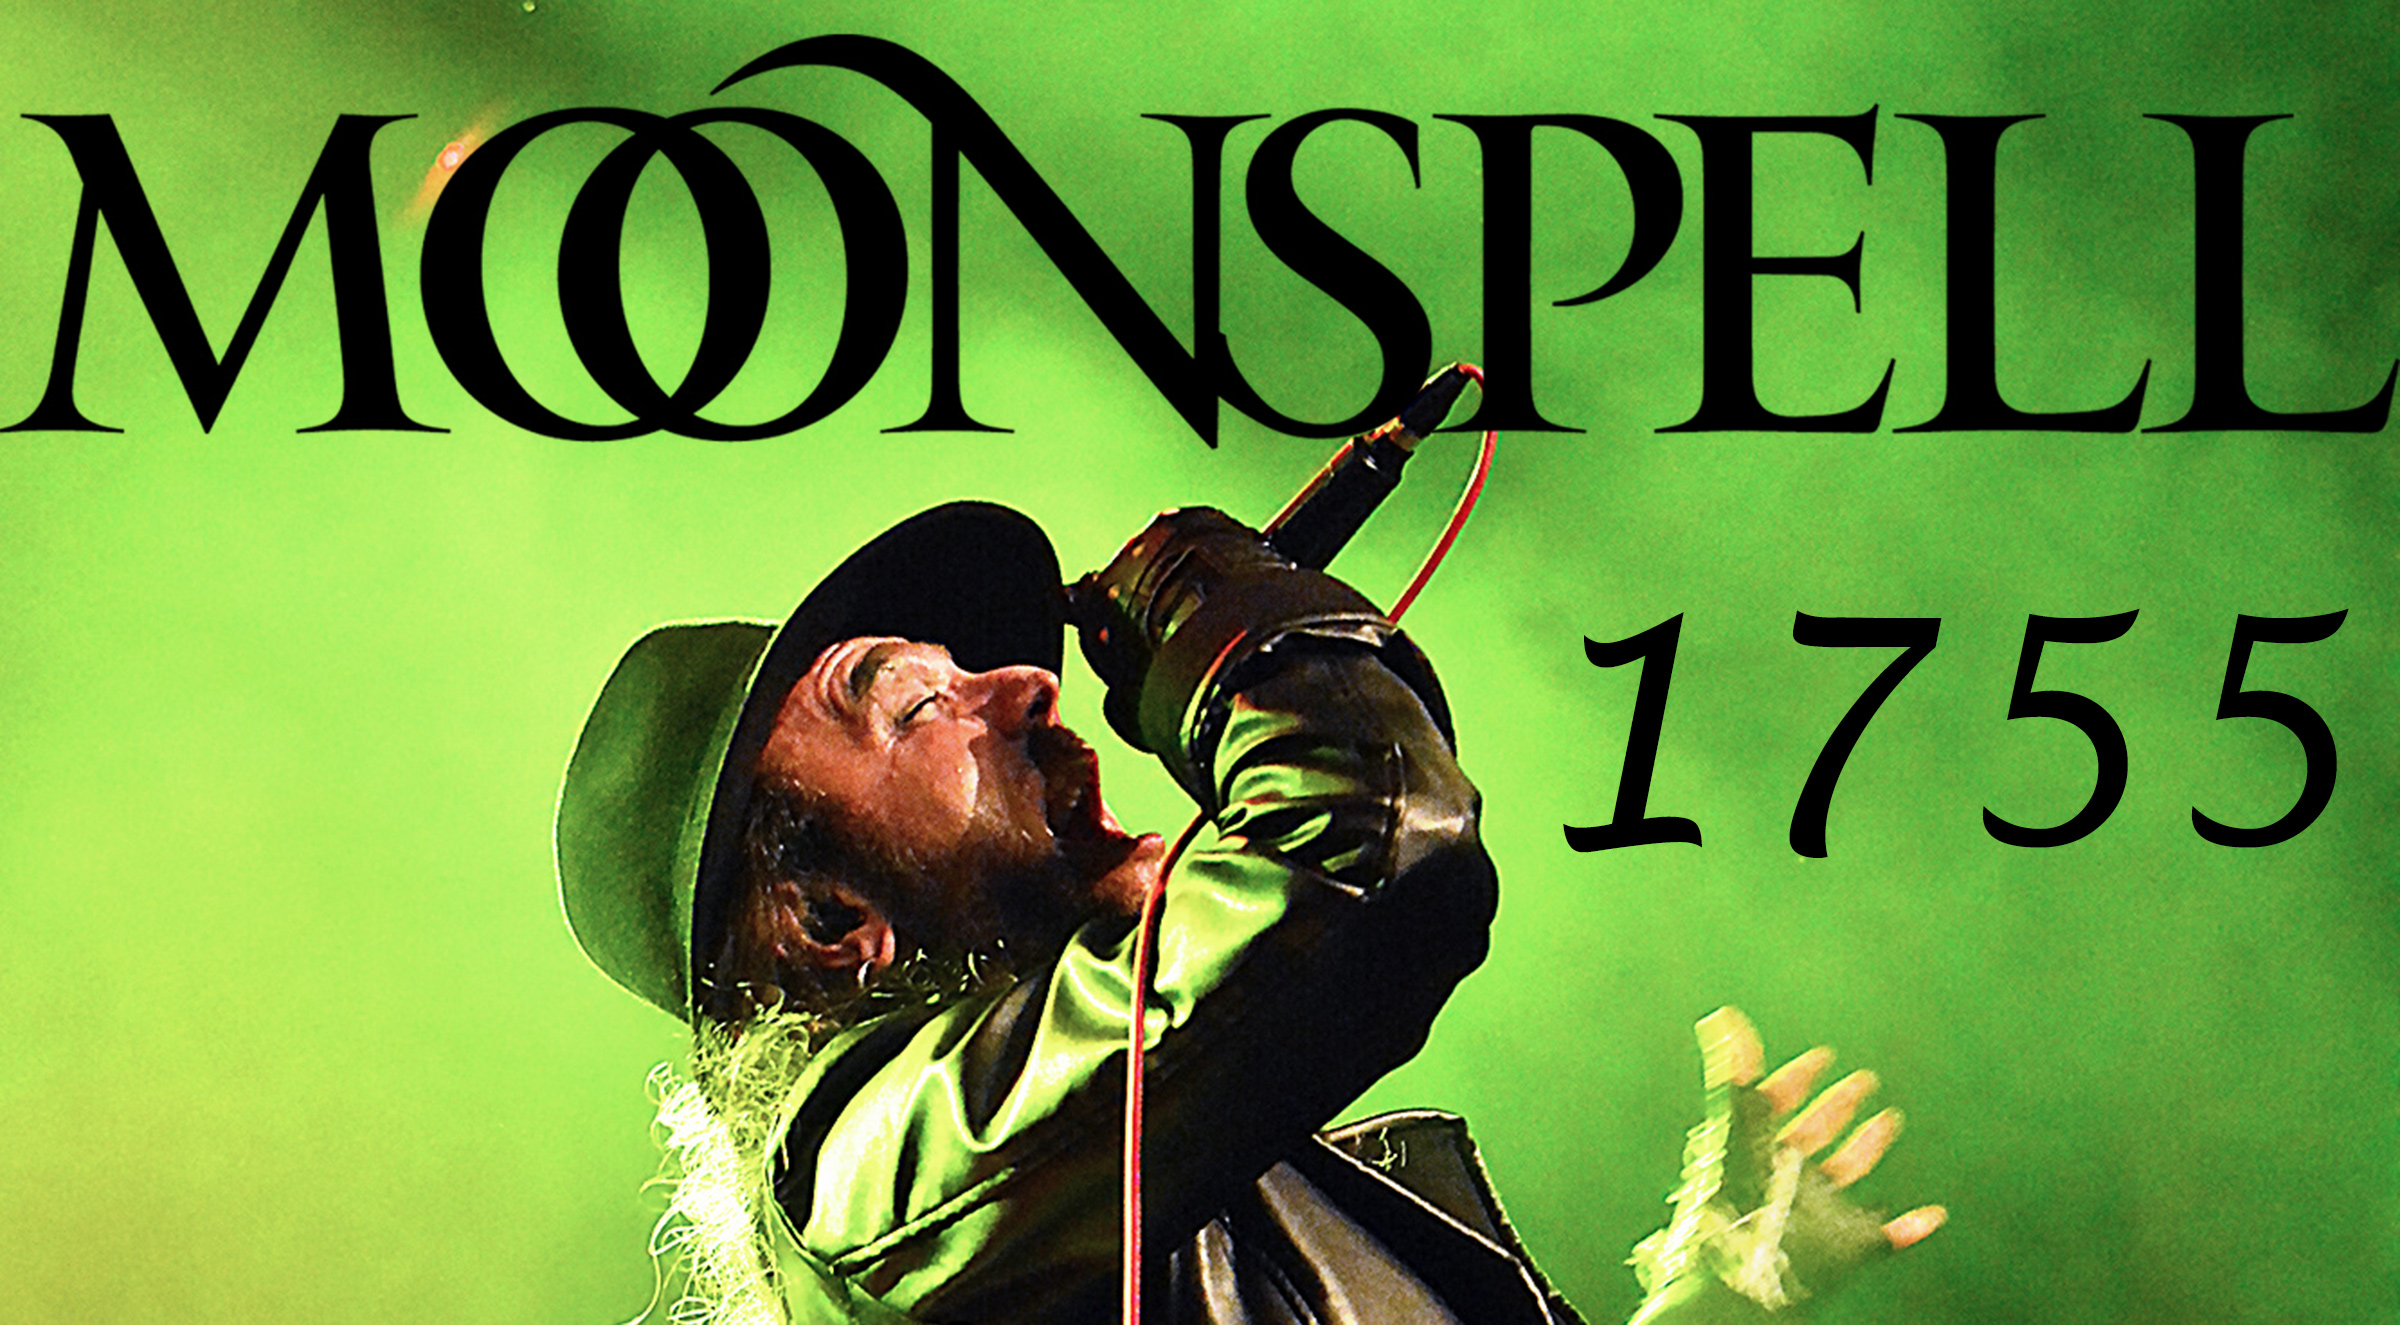 1755 – a theatrical journey with Moonspell (gig report)